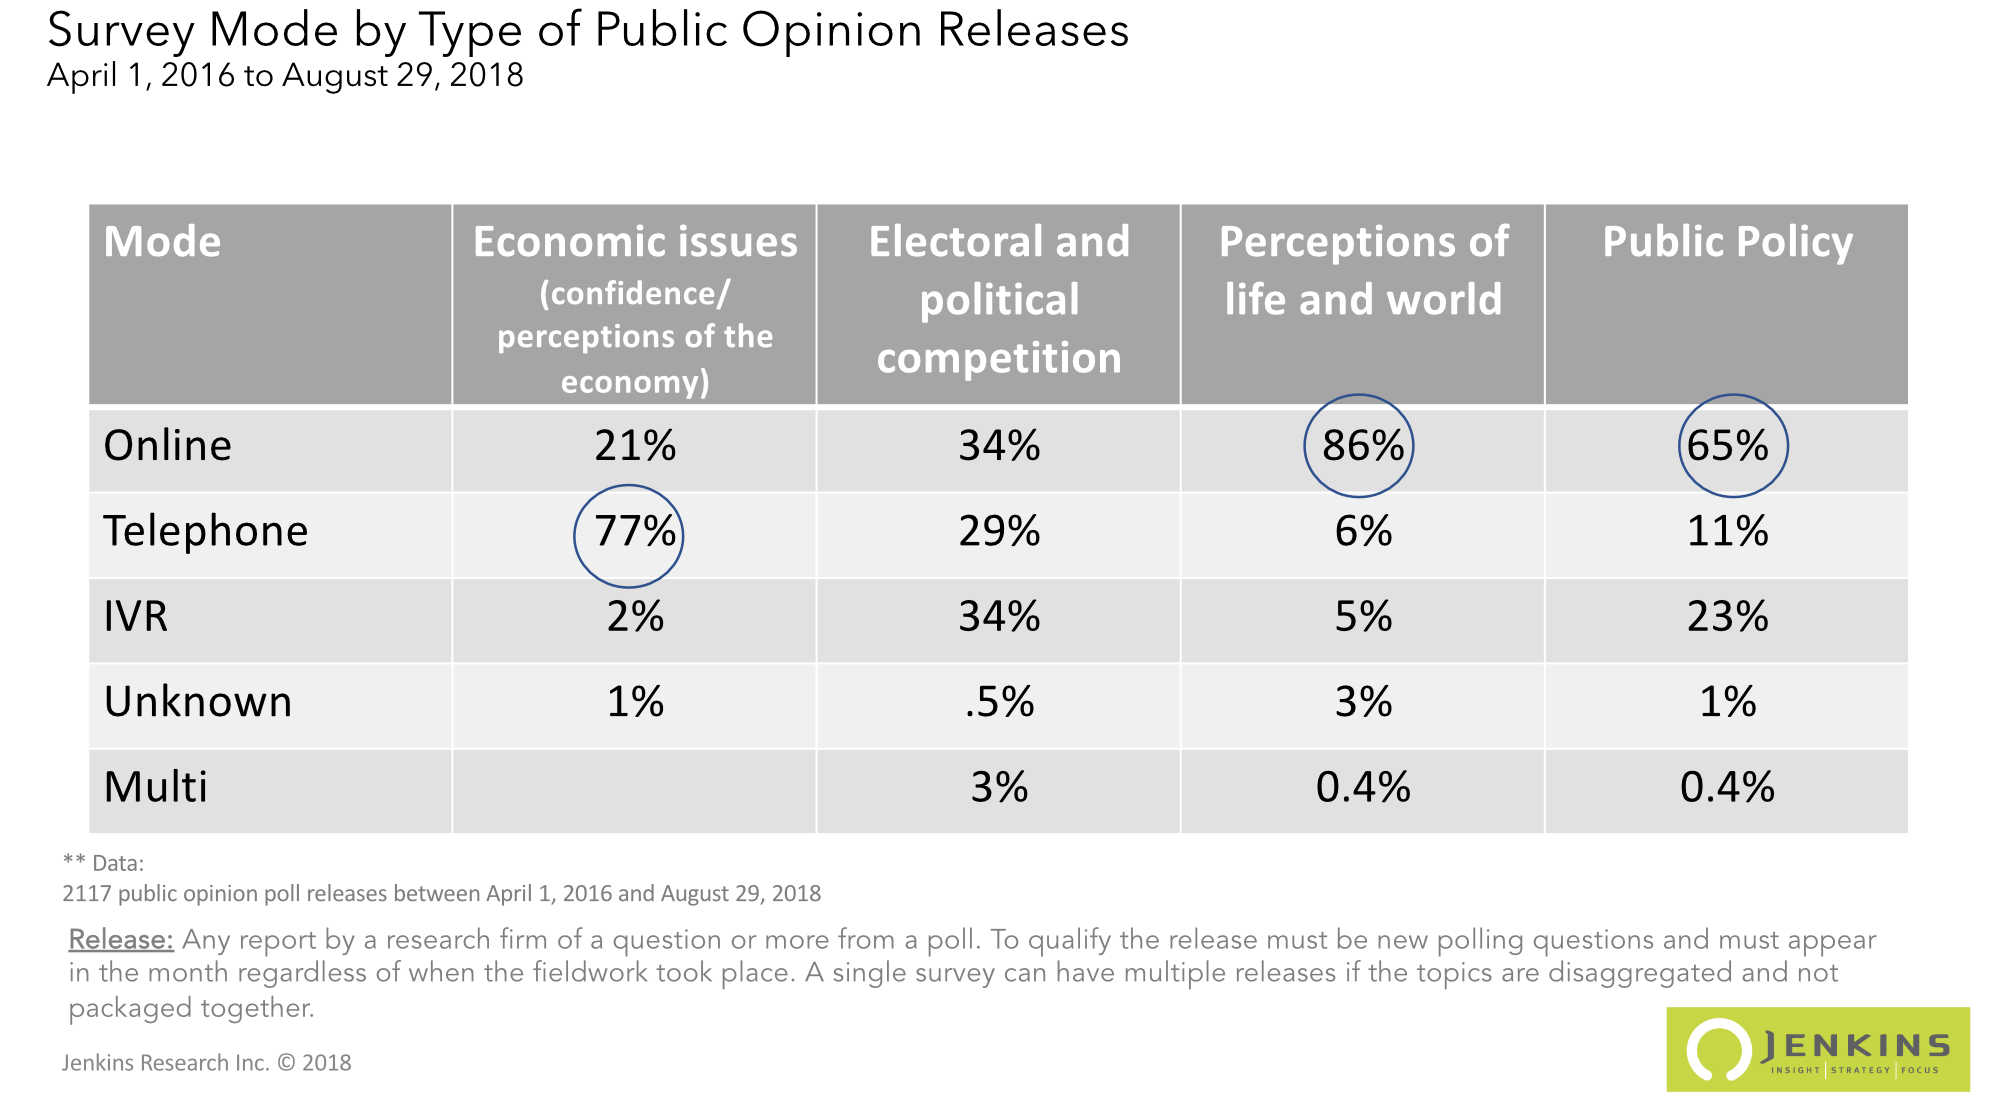 Share of public polls by survey mode and type of release